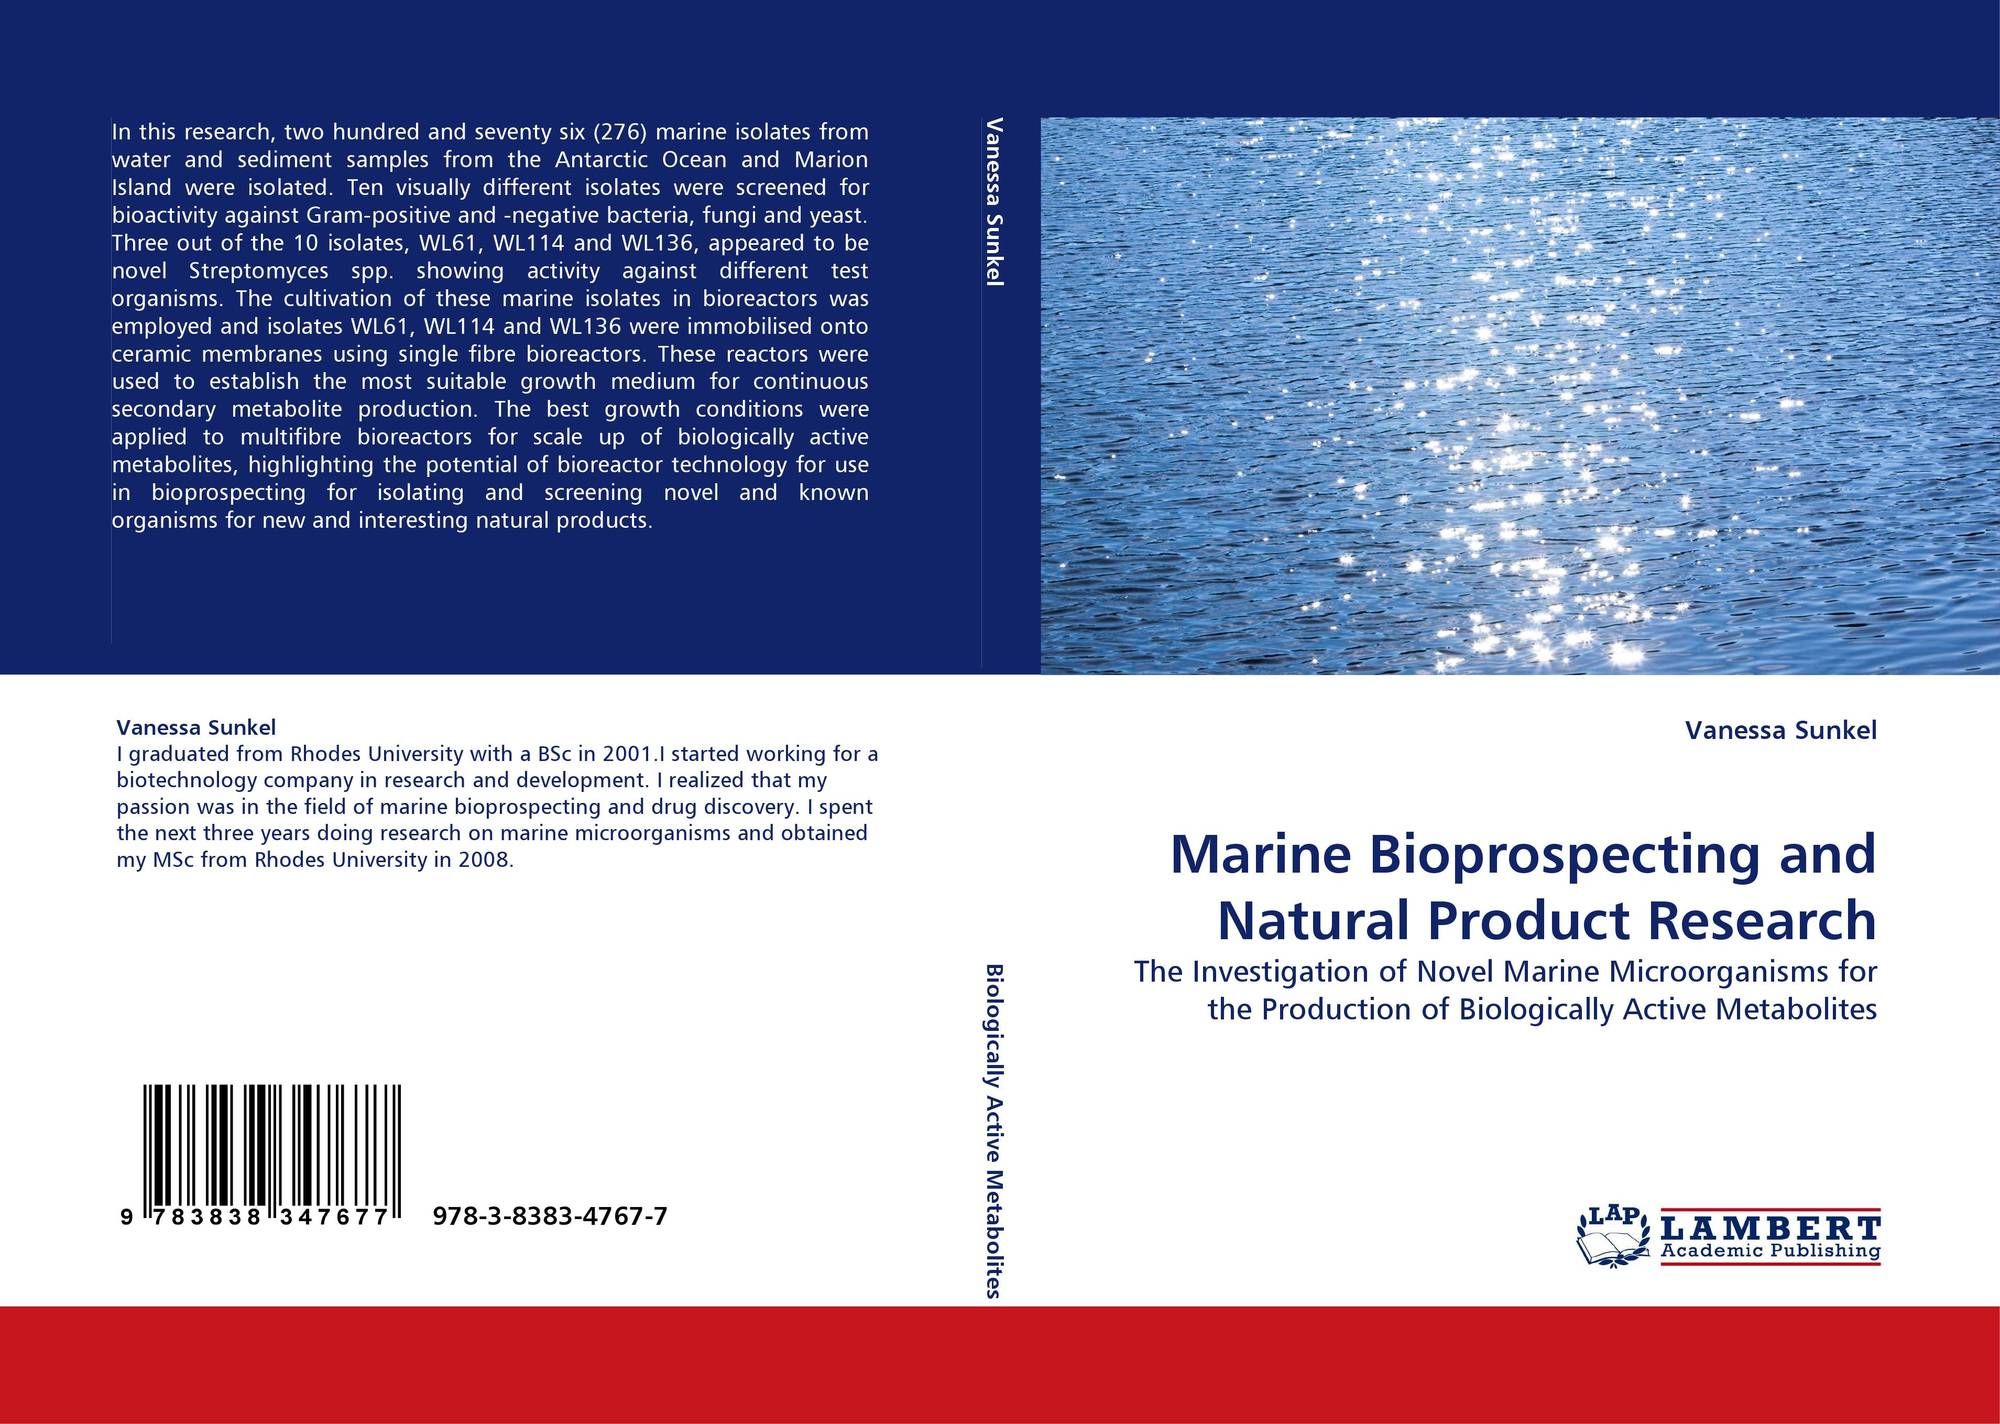 marine organisms and other novel natural